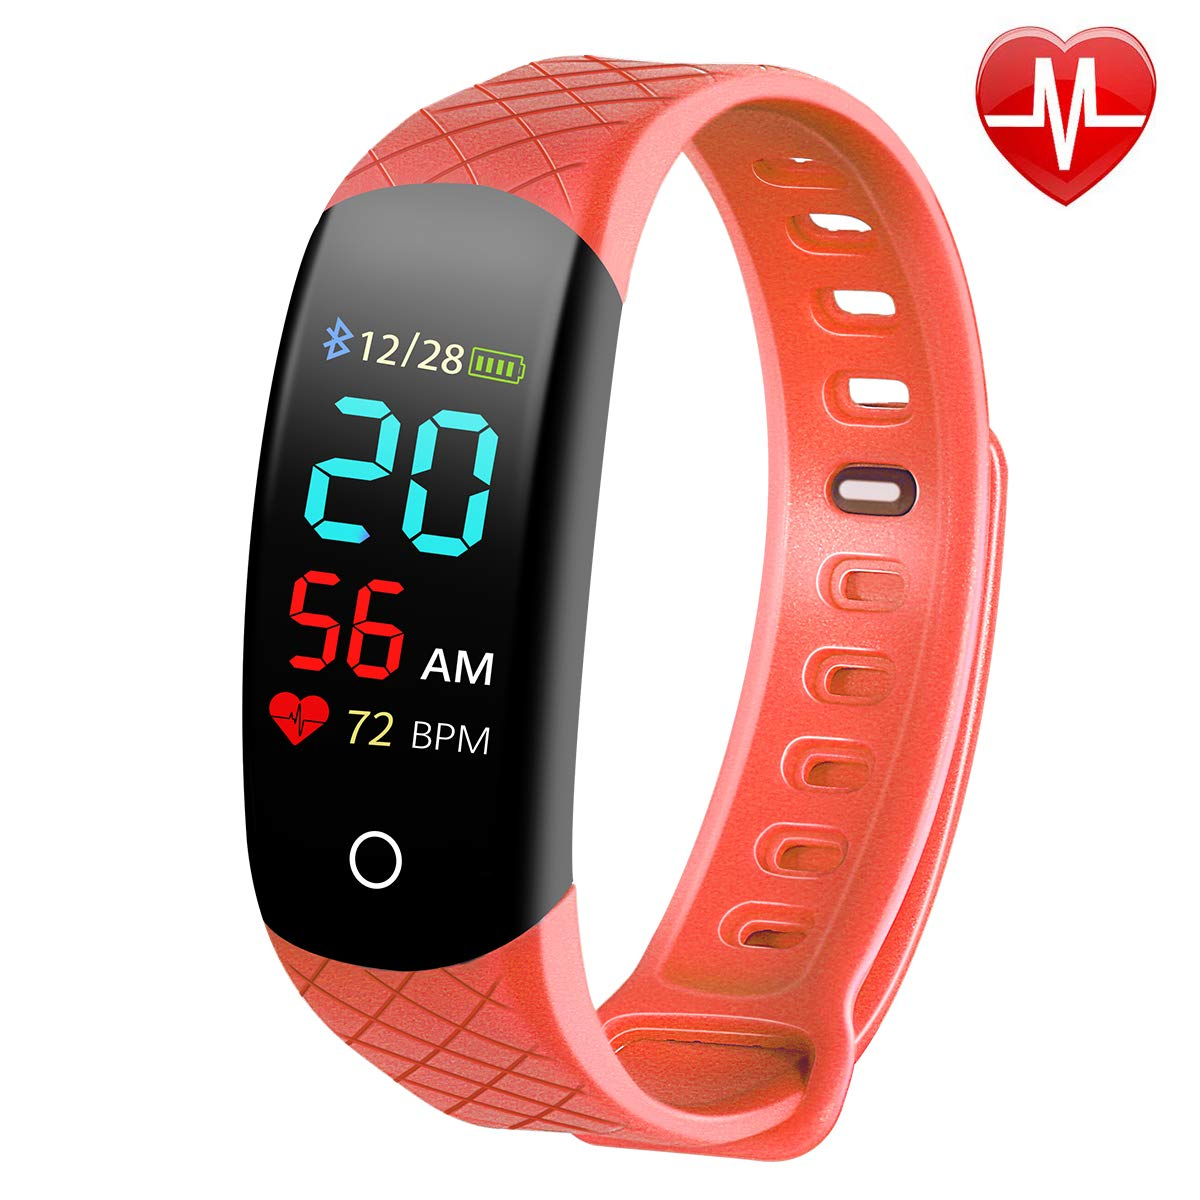 Busezy Fitness Tracker with Sleep Monitor, Heart Rate Monitor, Step Counter, Calorie Counter, Waterproof Smart Fitness Tracker for Kids, Women and Men. (red) by Busezy